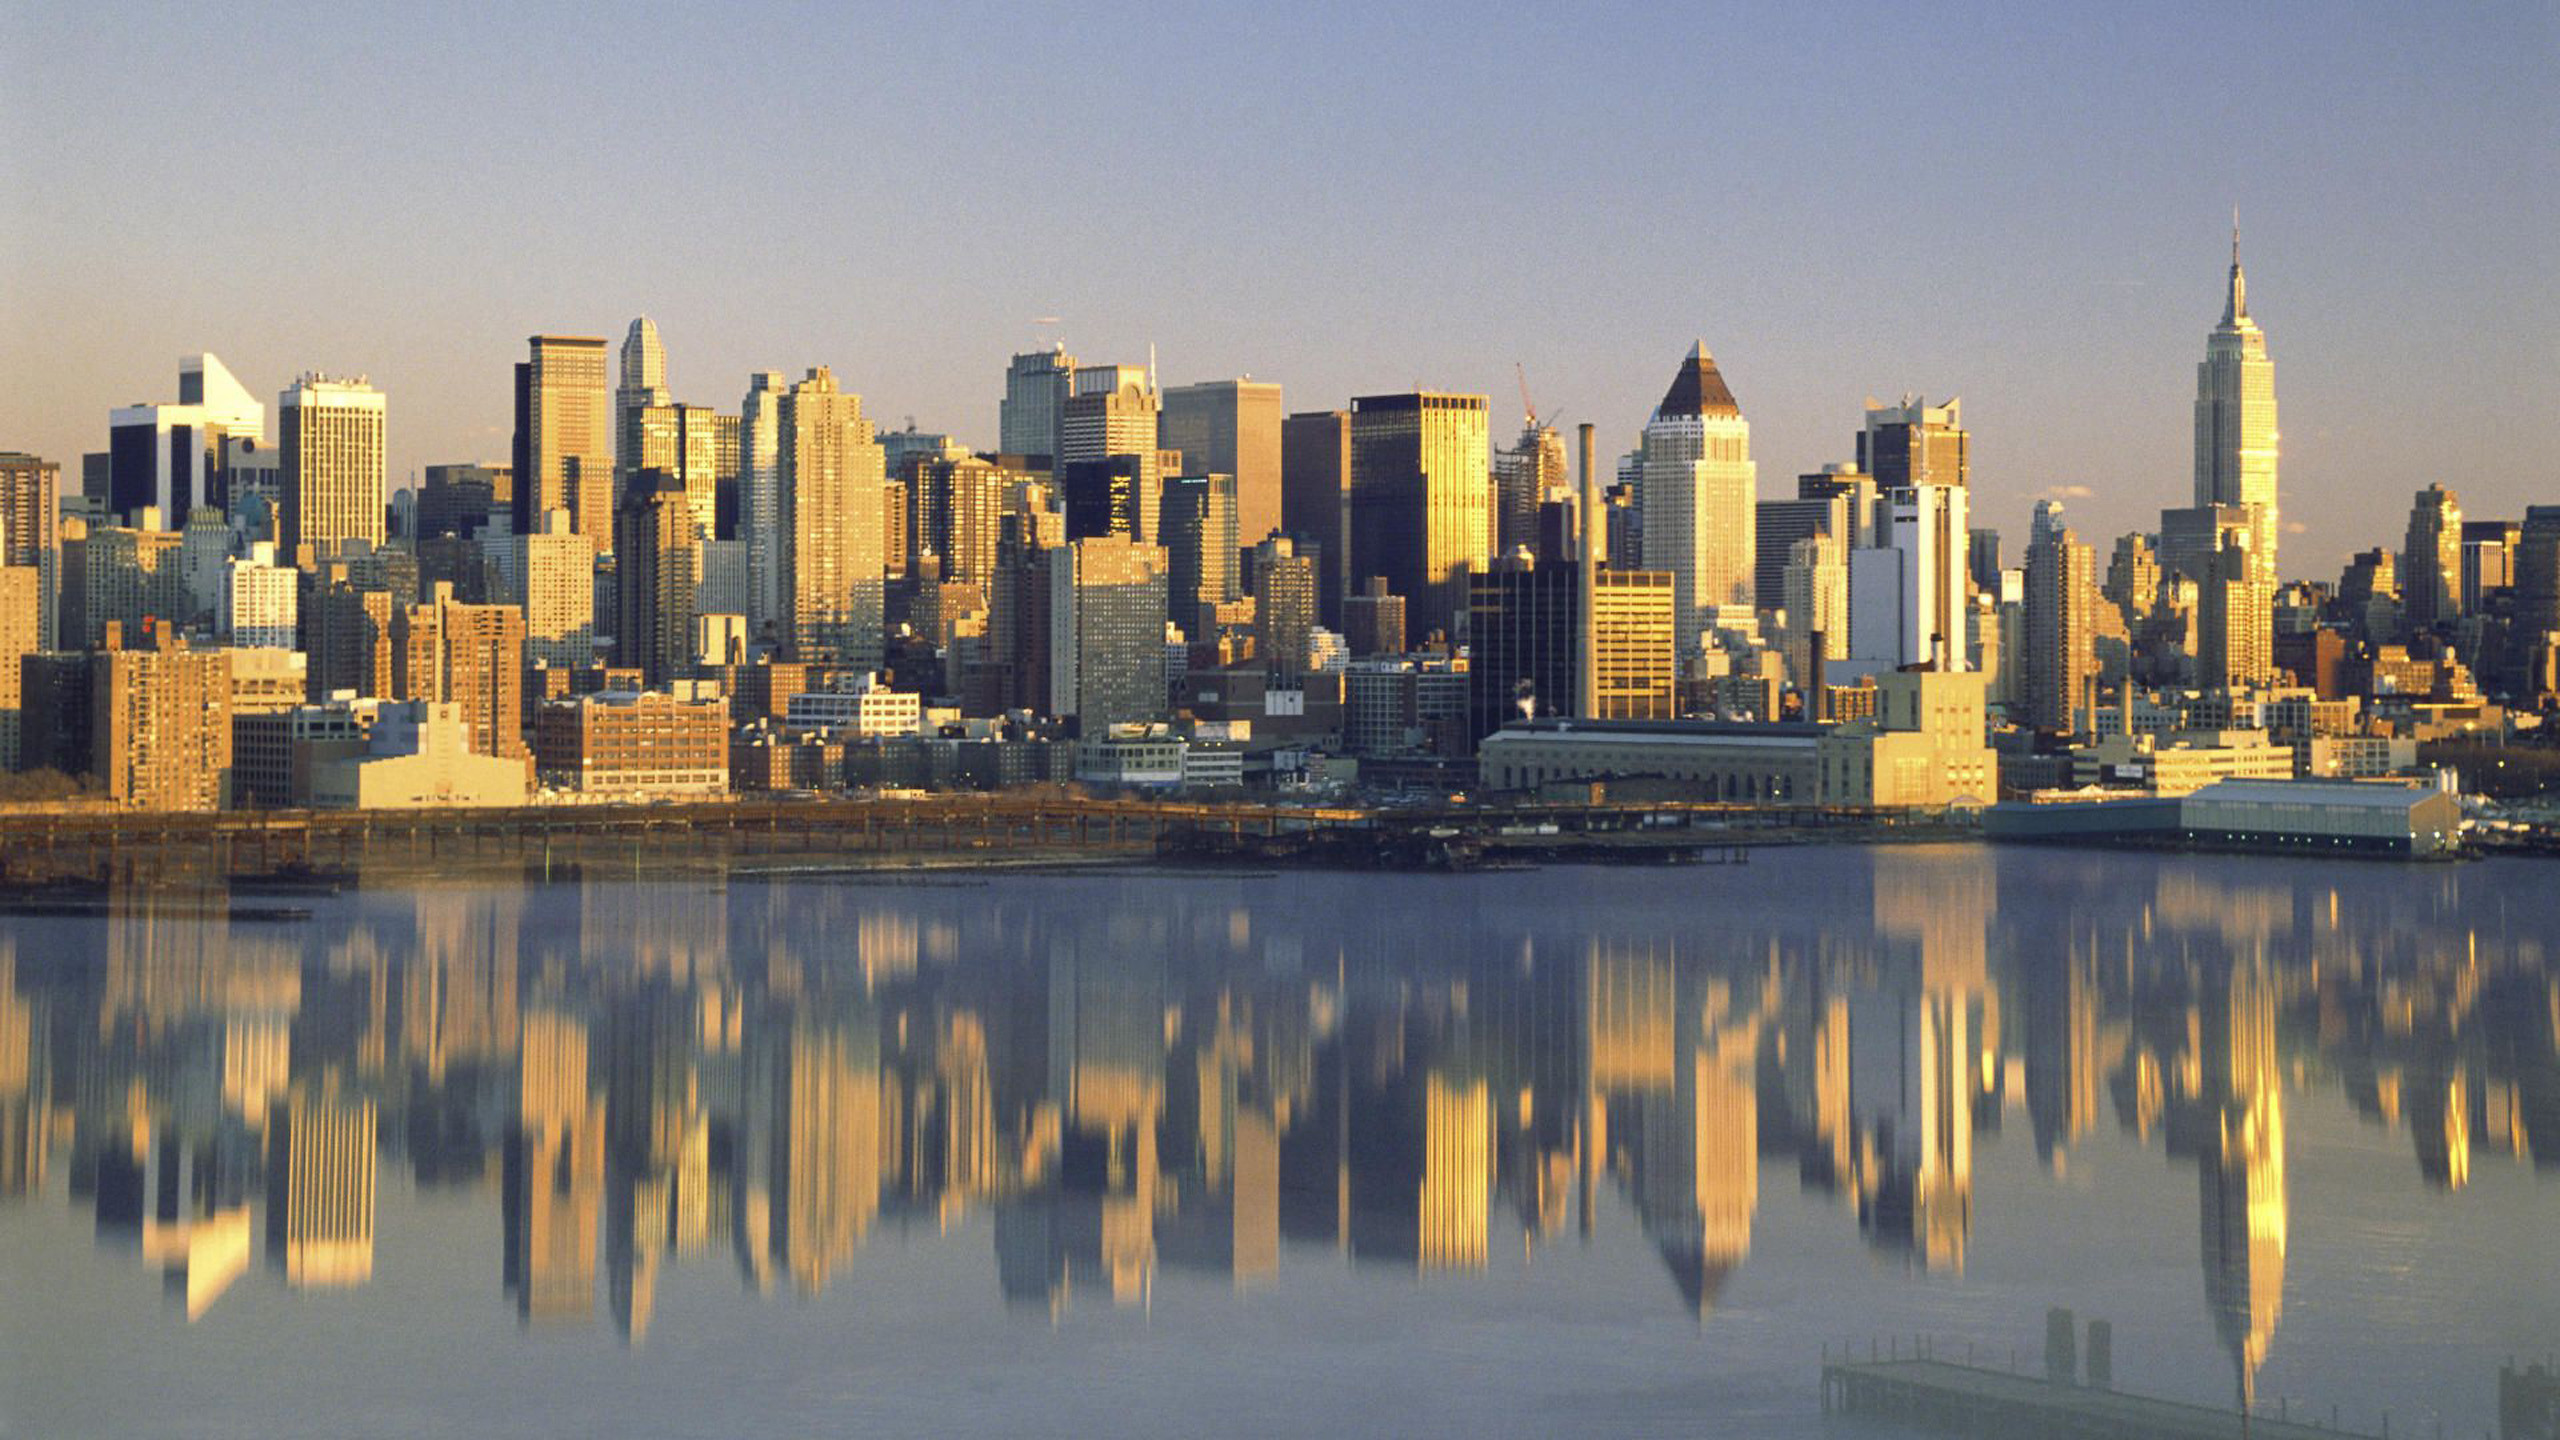 2560x1440 Skyline New York City wallpaper wallpaper free download 1920×1080 New York Skyline  Wallpaper (